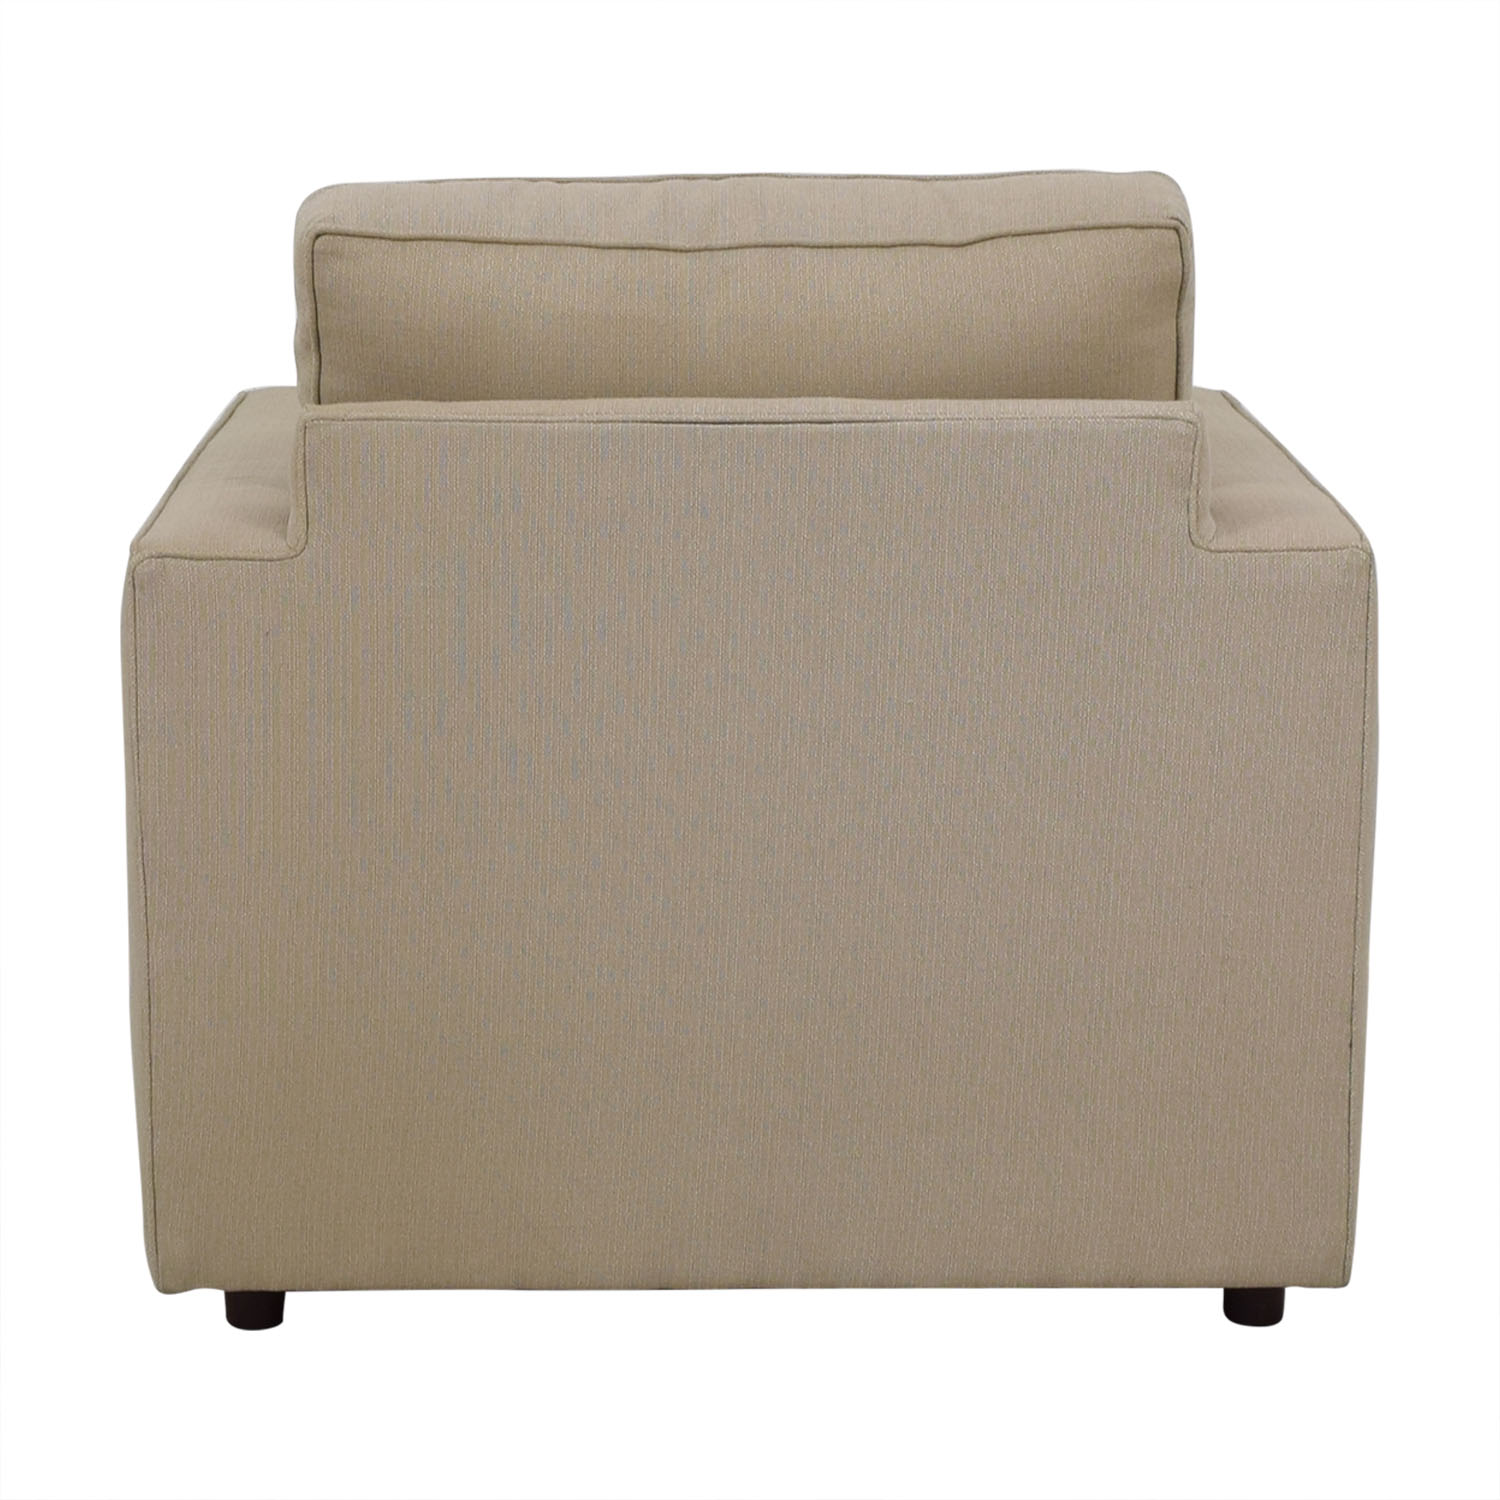 Attrayant 68% OFF   Room U0026 Board Room And Board York Chair And Ottoman / Chairs